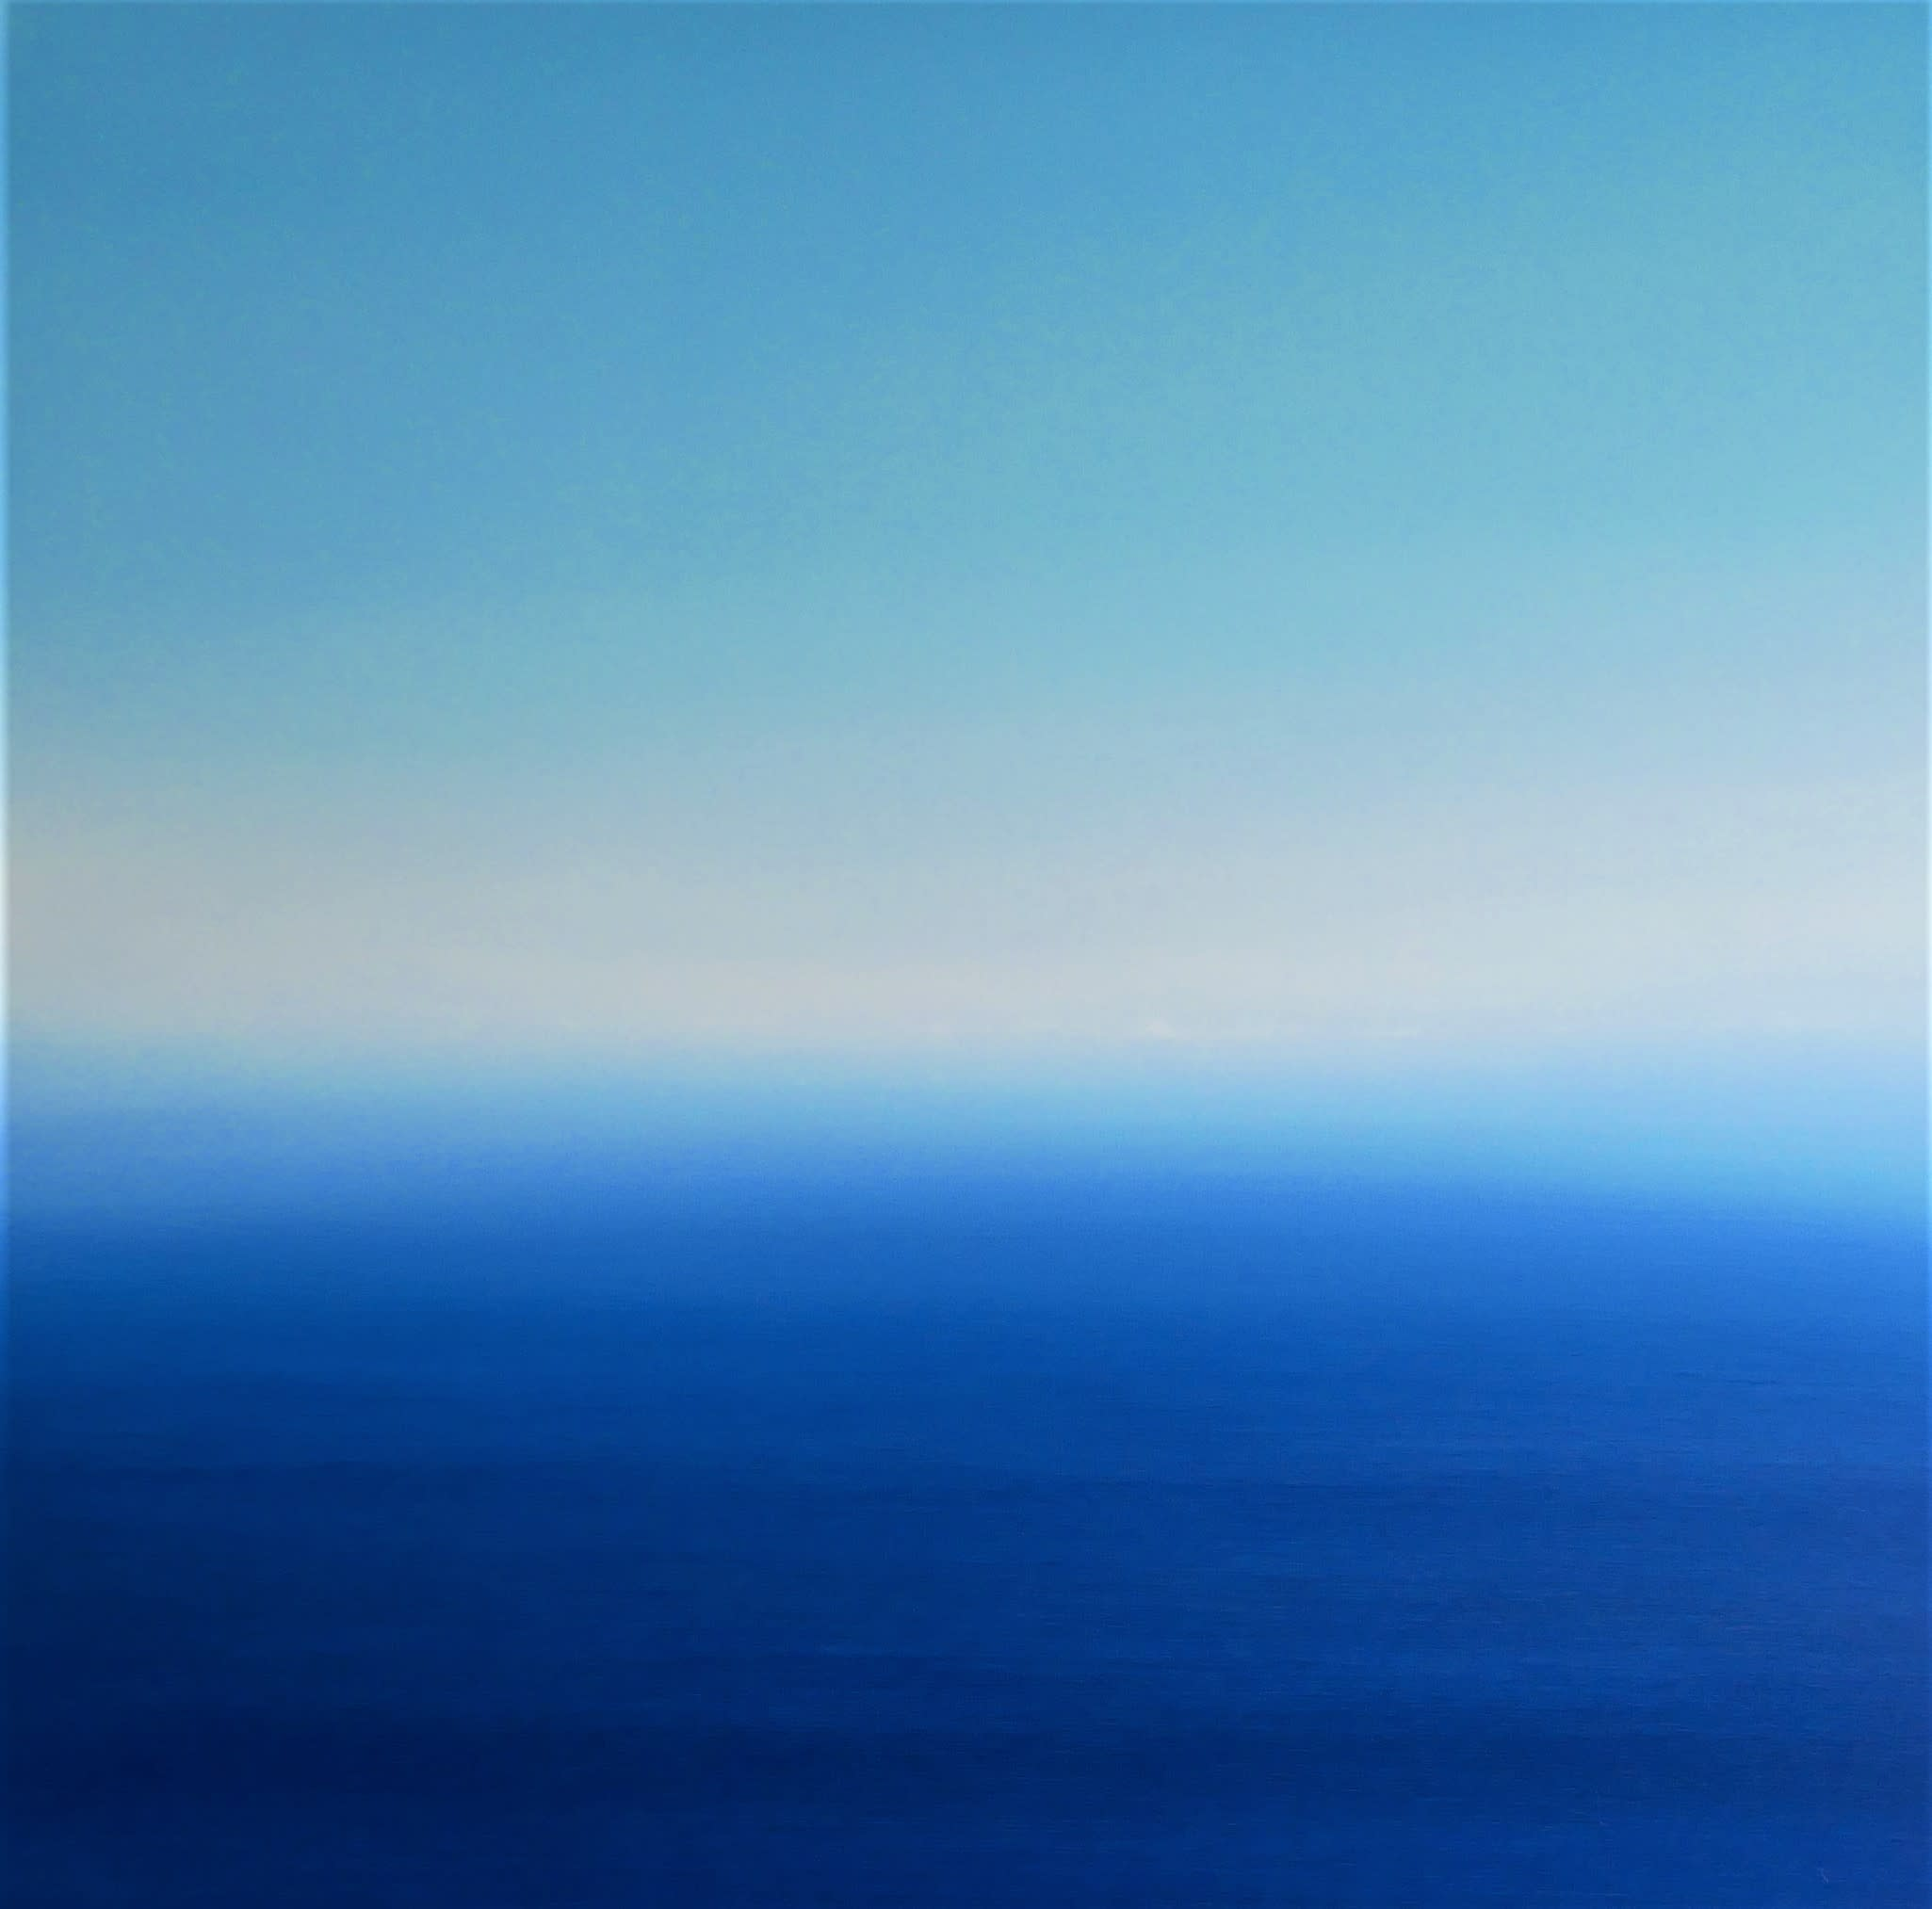 """<span class=""""link fancybox-details-link""""><a href=""""/artists/78-martyn-perryman/works/7398-martyn-perryman-summer-calm-st-ives-bay-2020/"""">View Detail Page</a></span><div class=""""artist""""><strong>Martyn Perryman</strong></div> b. 1963 <div class=""""title""""><em>Summer Calm St Ives Bay </em>, 2020</div> <div class=""""medium"""">oil on canvas</div> <div class=""""dimensions"""">h. 100 x w. 100 cm </div><div class=""""price"""">£1,400.00</div><div class=""""copyright_line"""">Ownart: £140 x 10 Months, 0% APR</div>"""